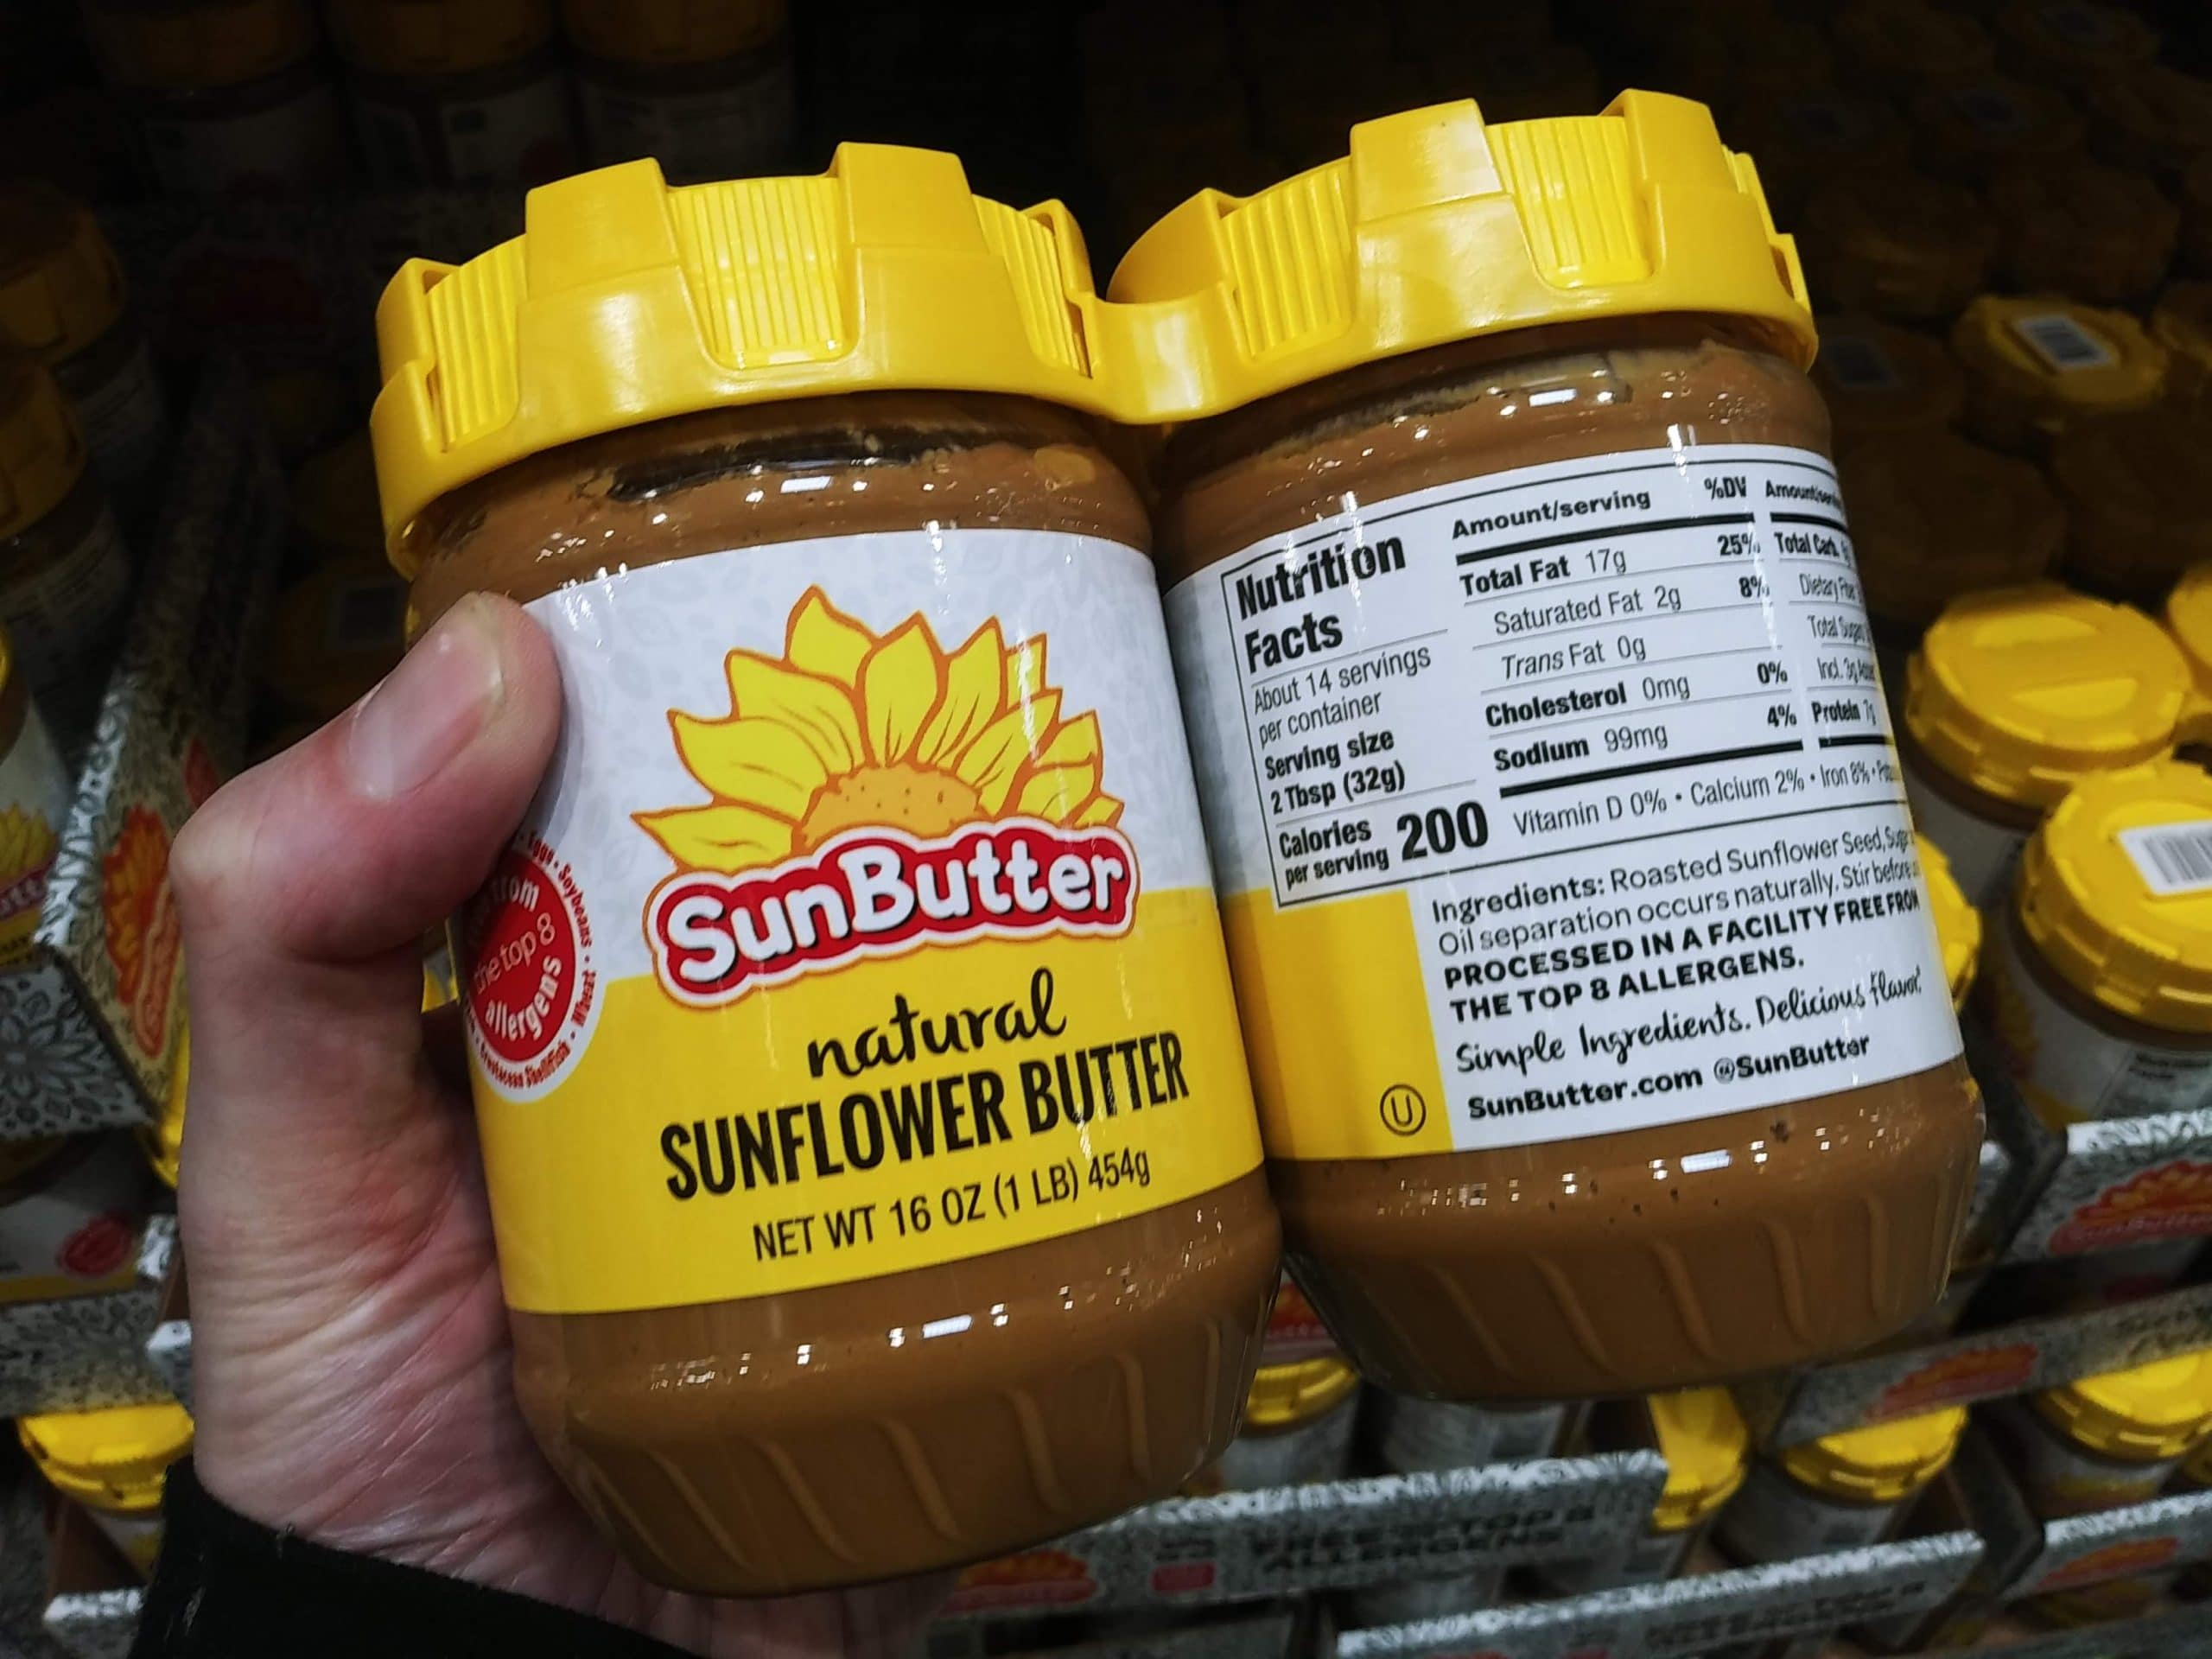 Sunbutter Sunflower Butter 2pk $8.59